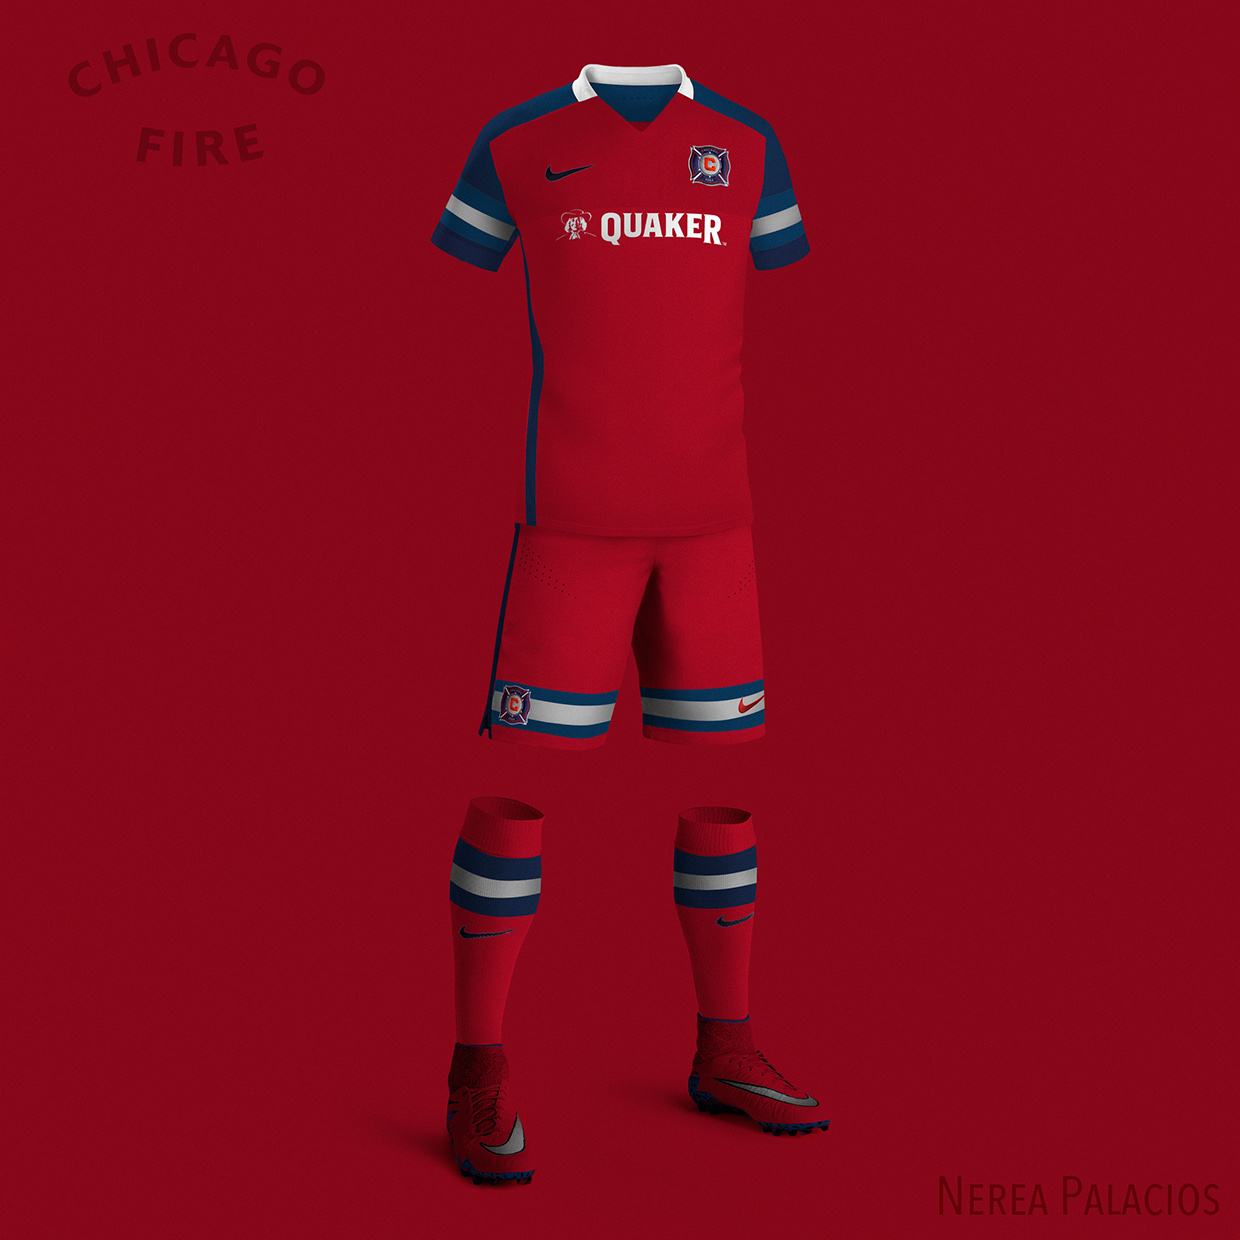 5a1f6bc0a520 What if MLS clubs switched jerseys from adidas to Nike  Check out ...